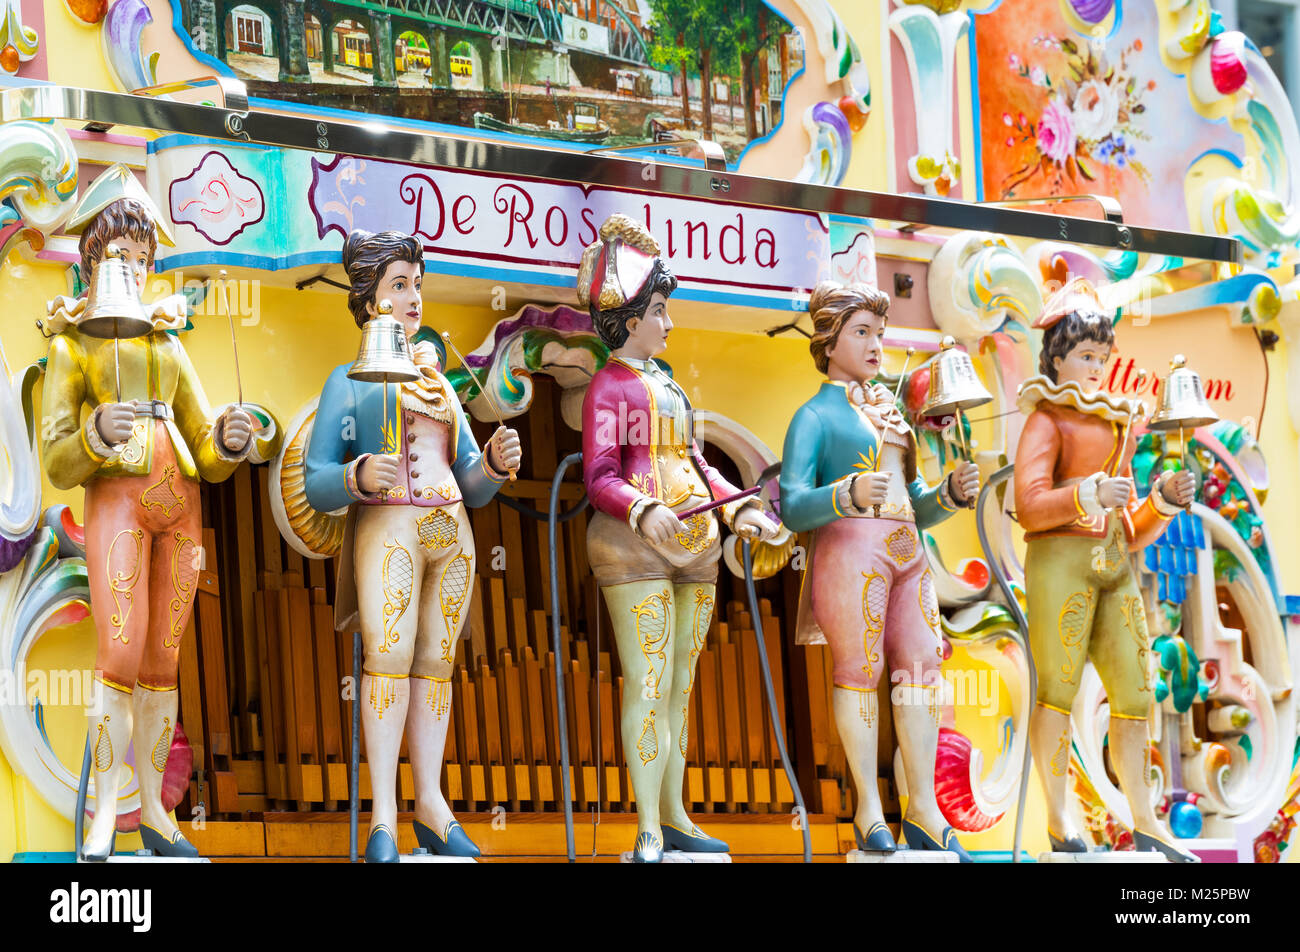 Netherlands, Rotterdam, The colorful puppets of an ancient organ in the Beves Plein shopping area Stock Photo